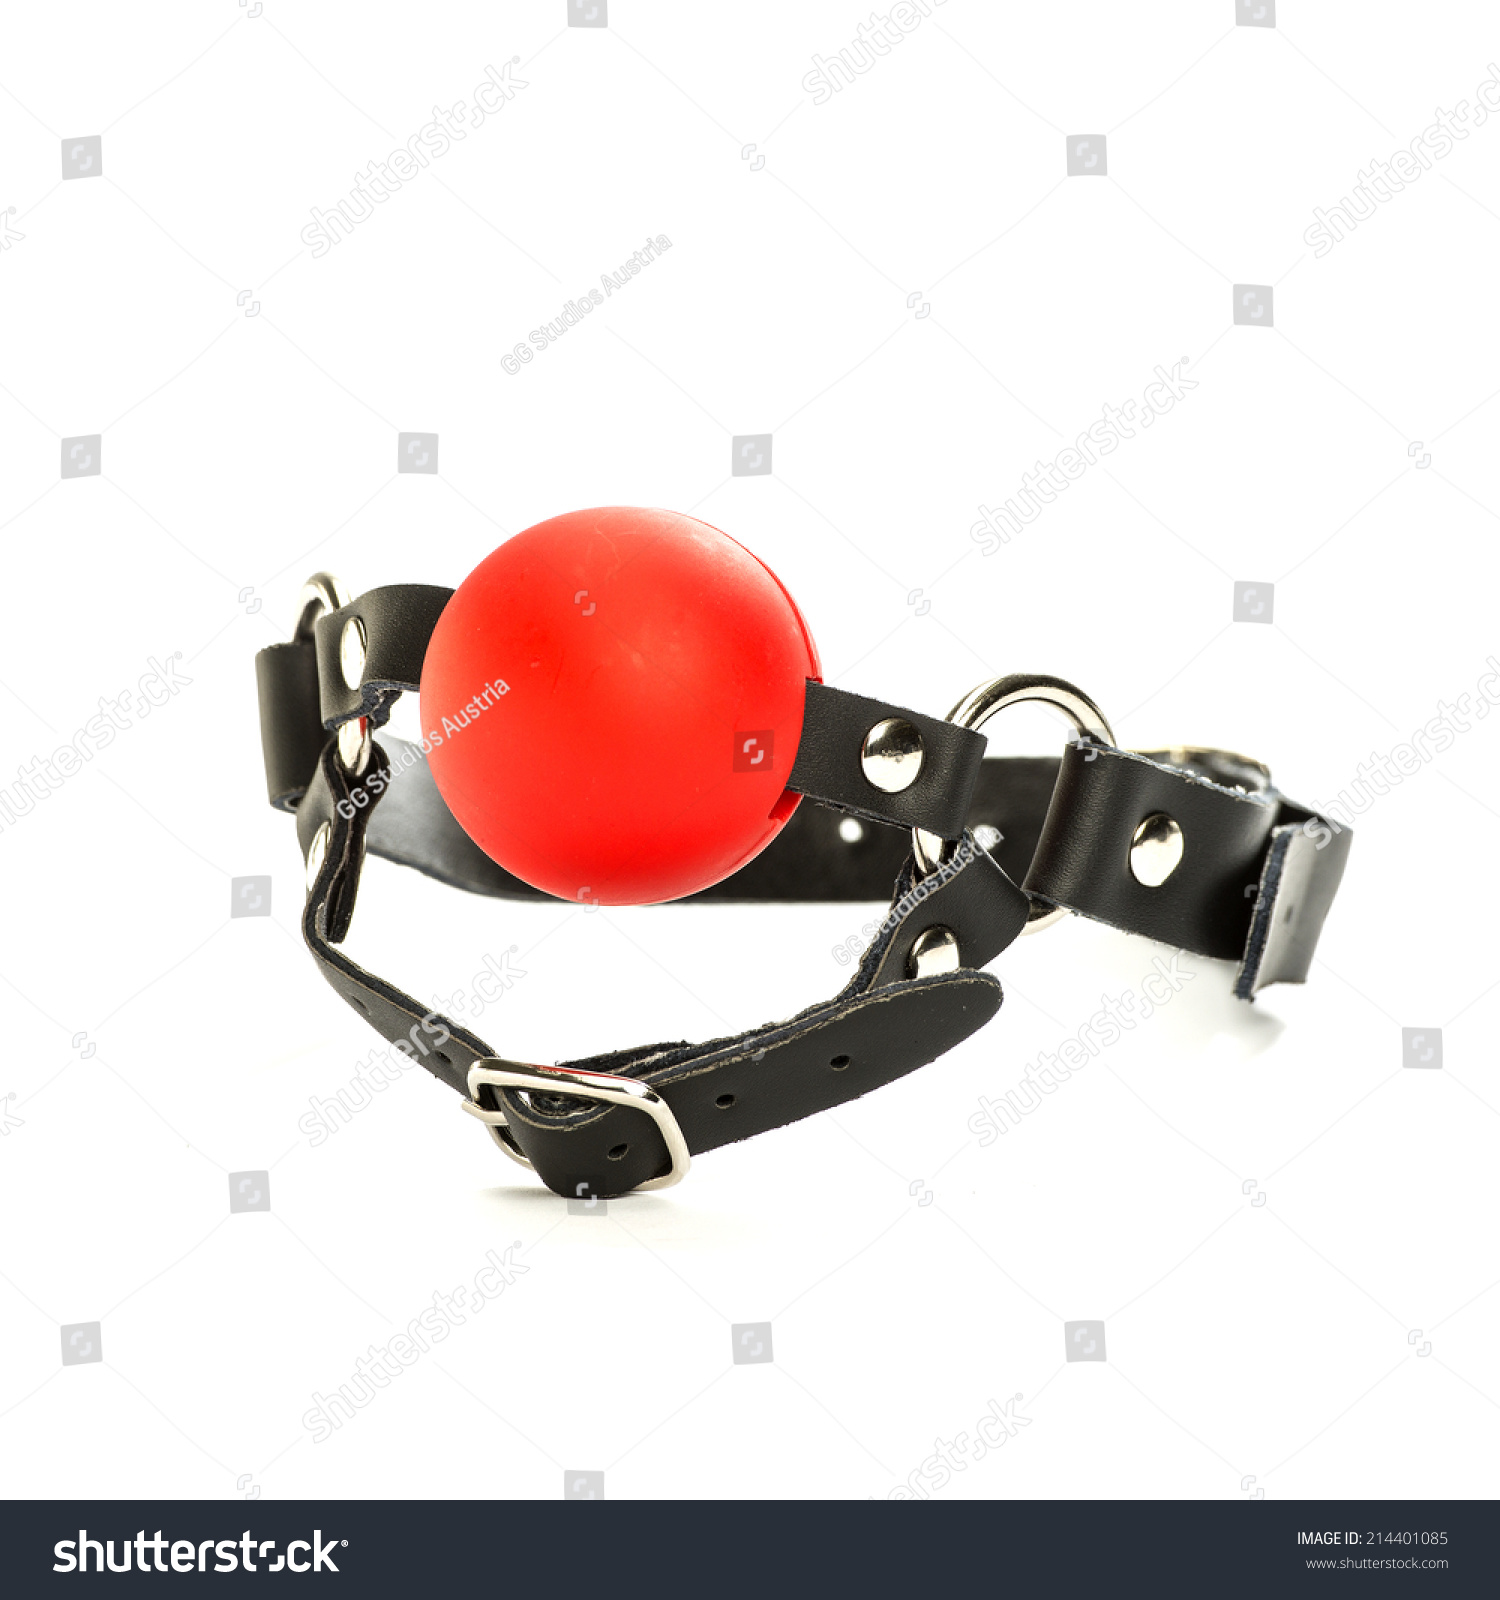 A red ball gag on a leather collar, for fetish and bondare role-playing